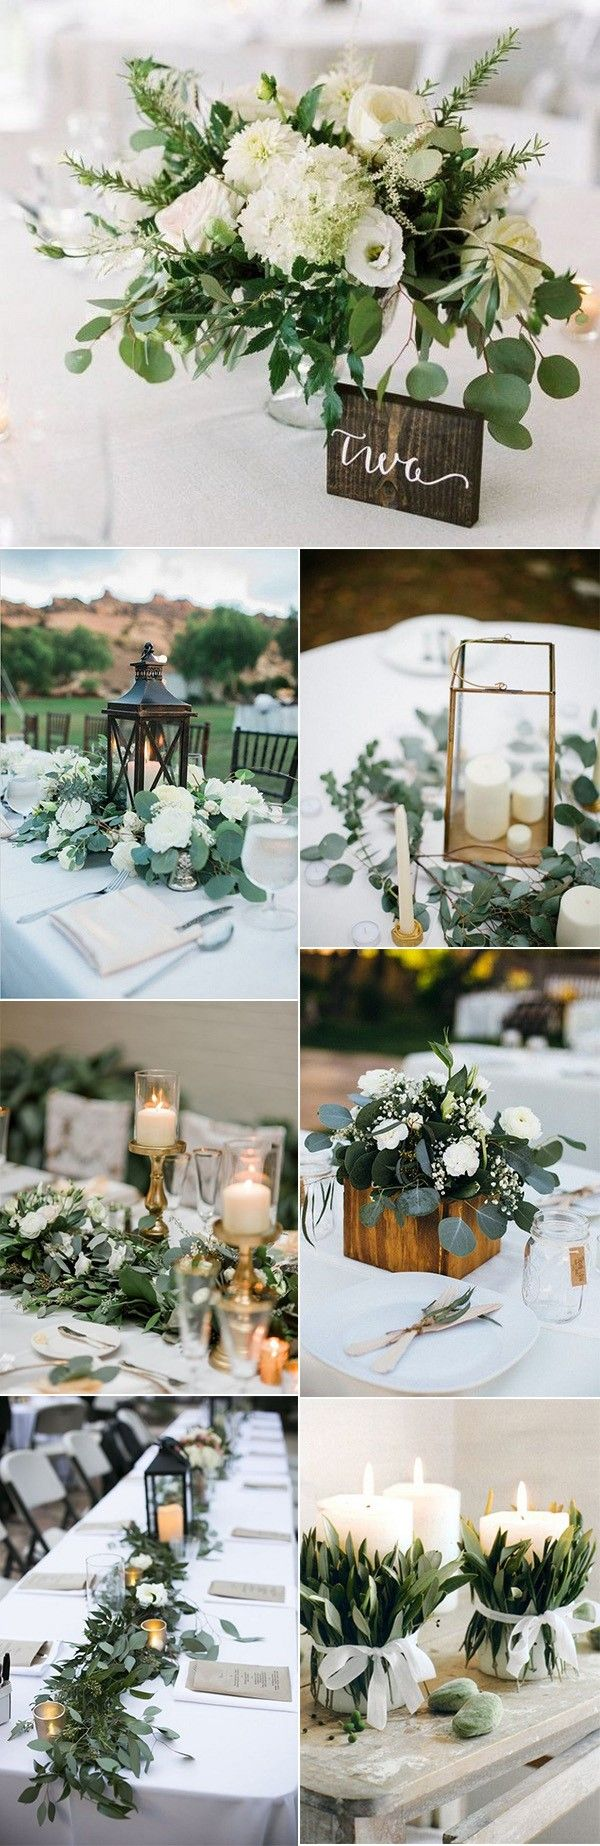 trending-white-and-greenery-chic-wedding-centerpieces.jpg 600×1,846 pixels